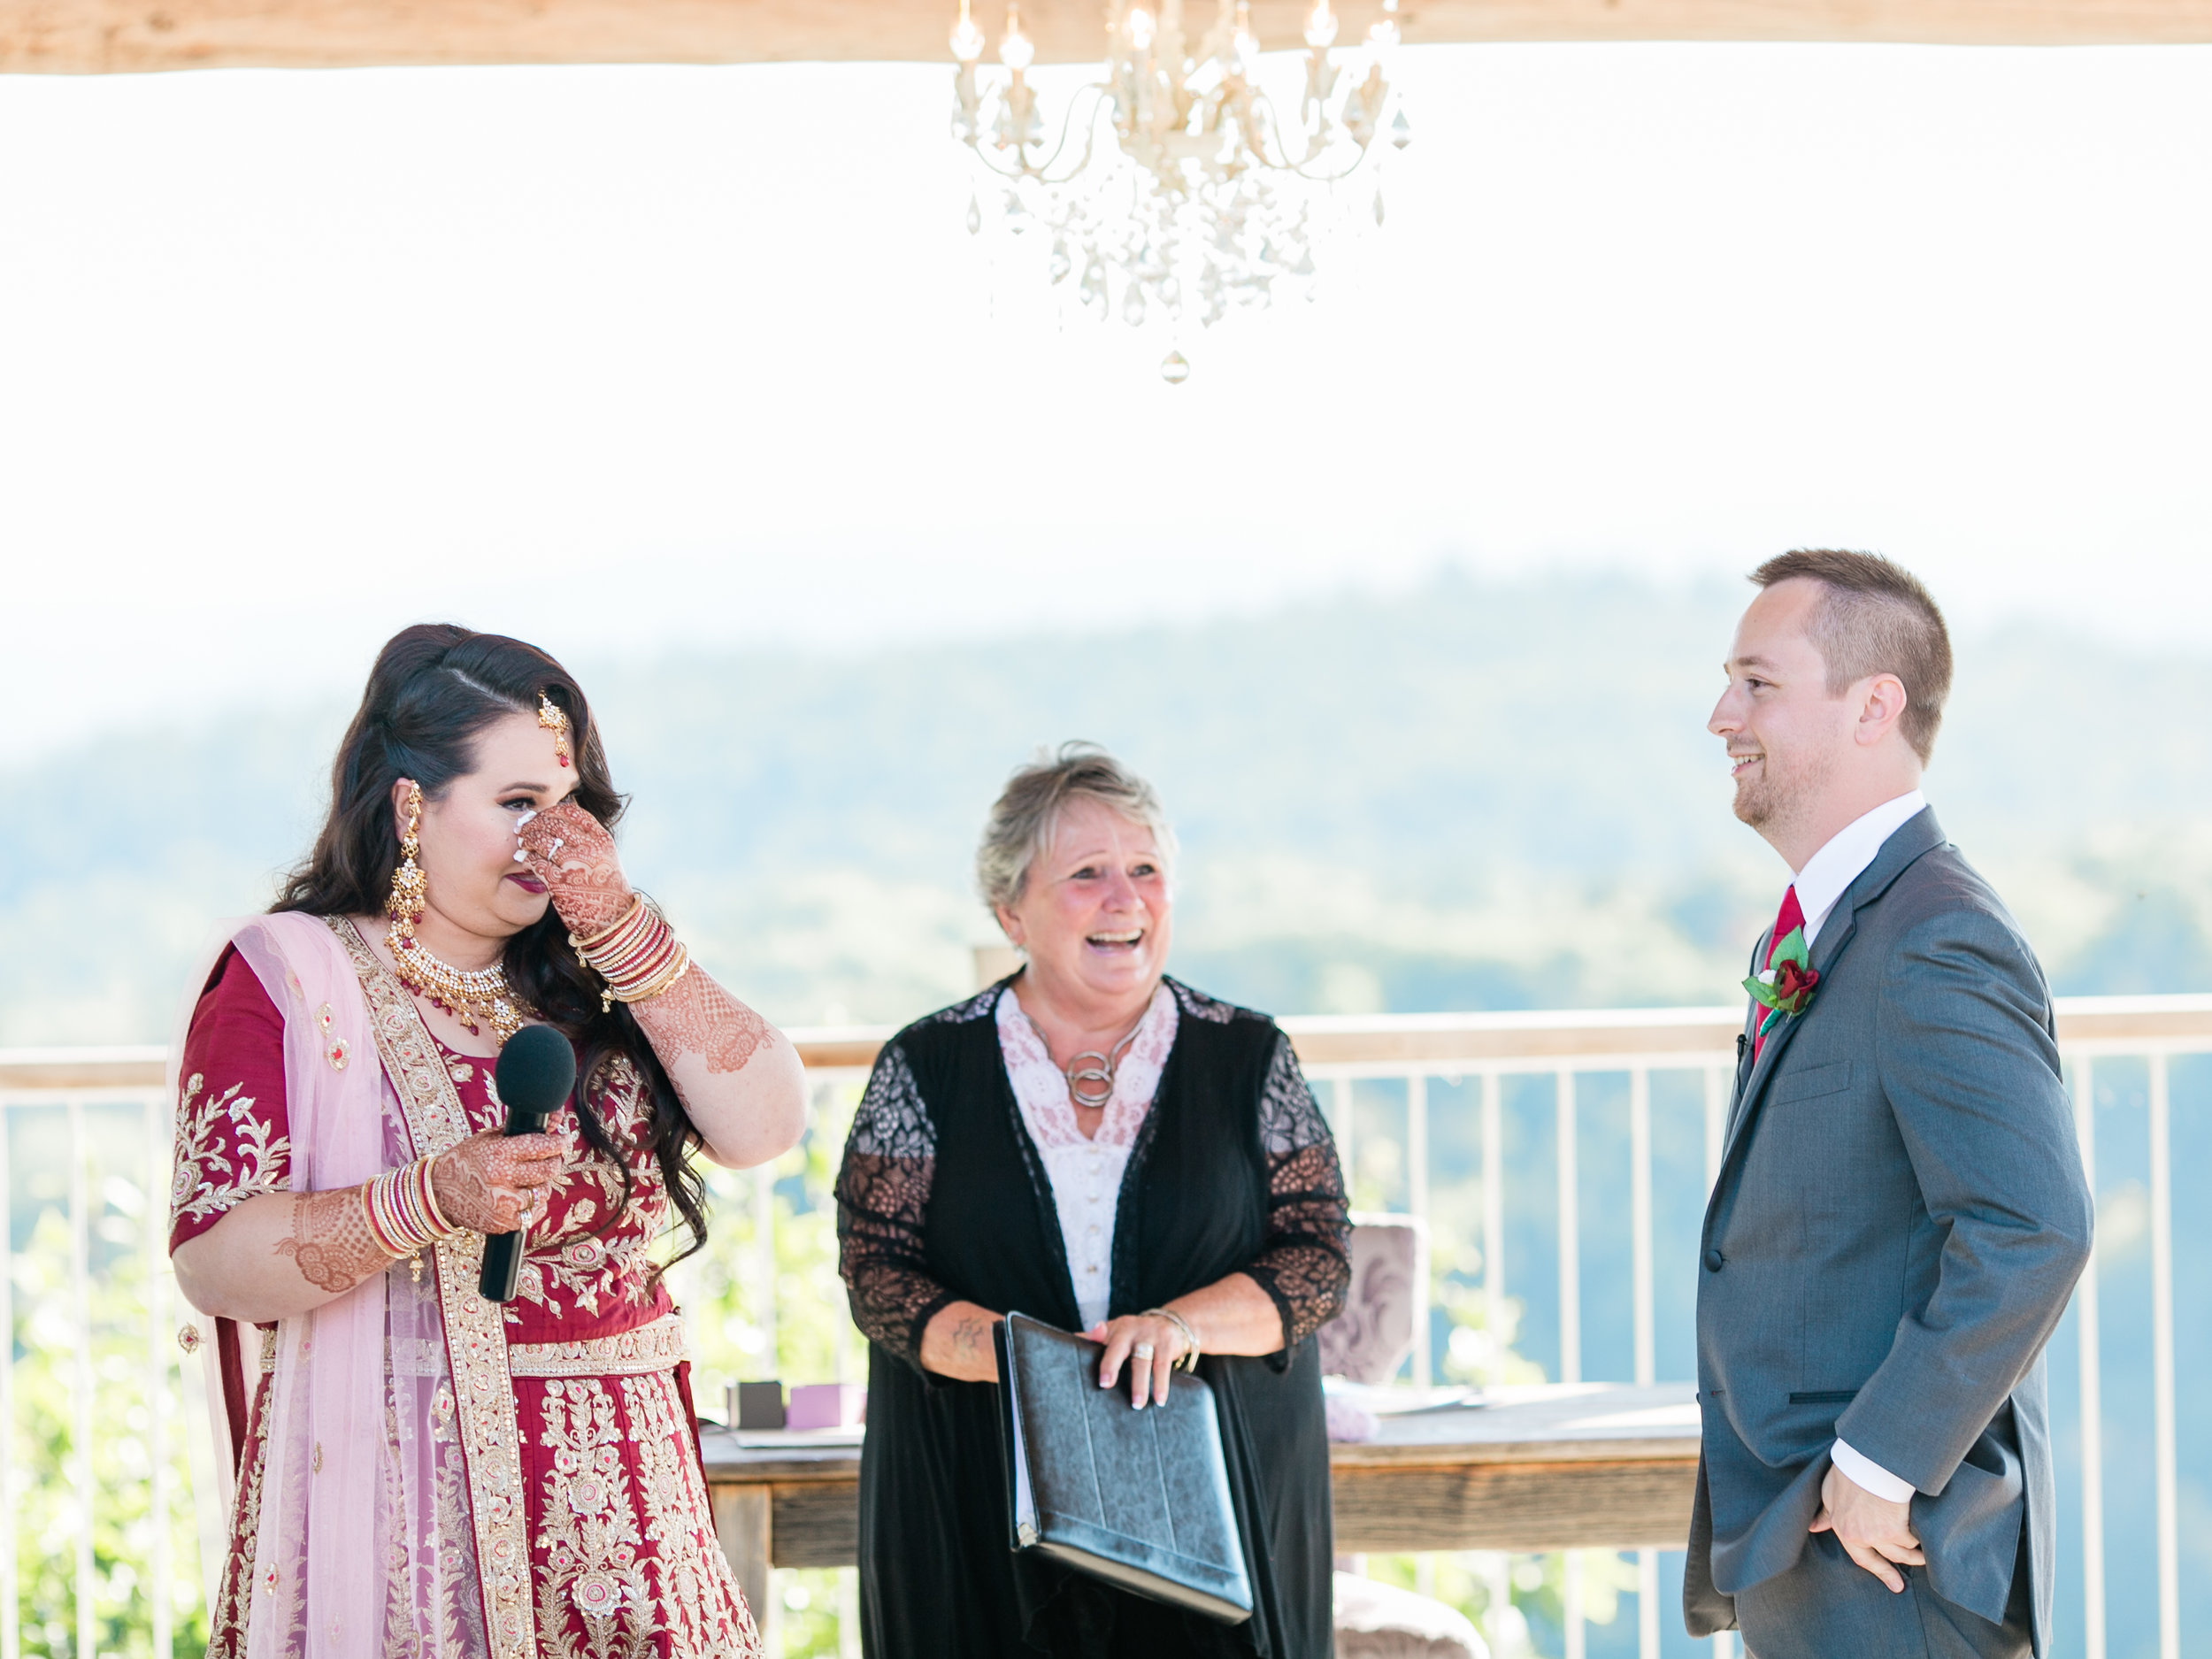 LeBelvedere_MountainTopWedding_StephanieMasonPhotography-135.jpg